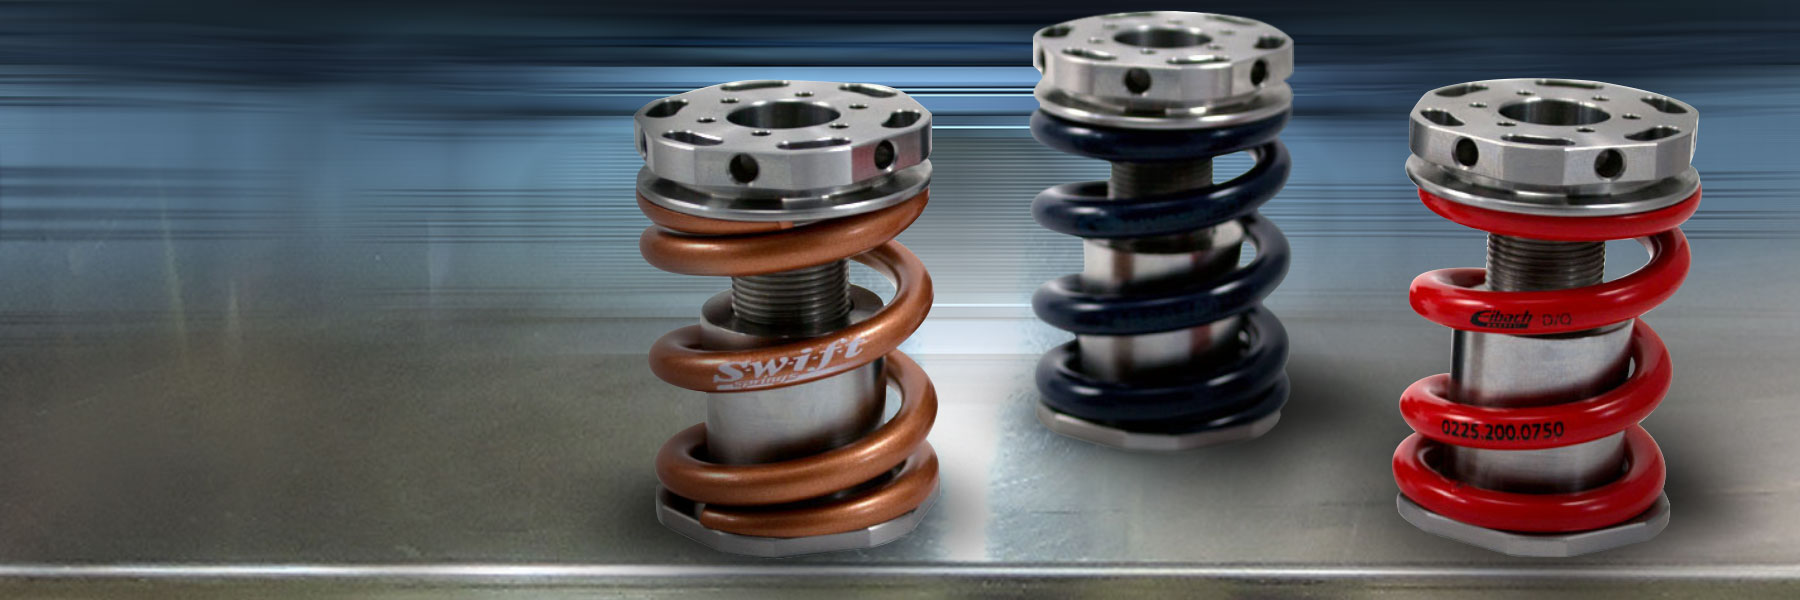 RE Suspension | Auto Racing High Performance Parts | Springs